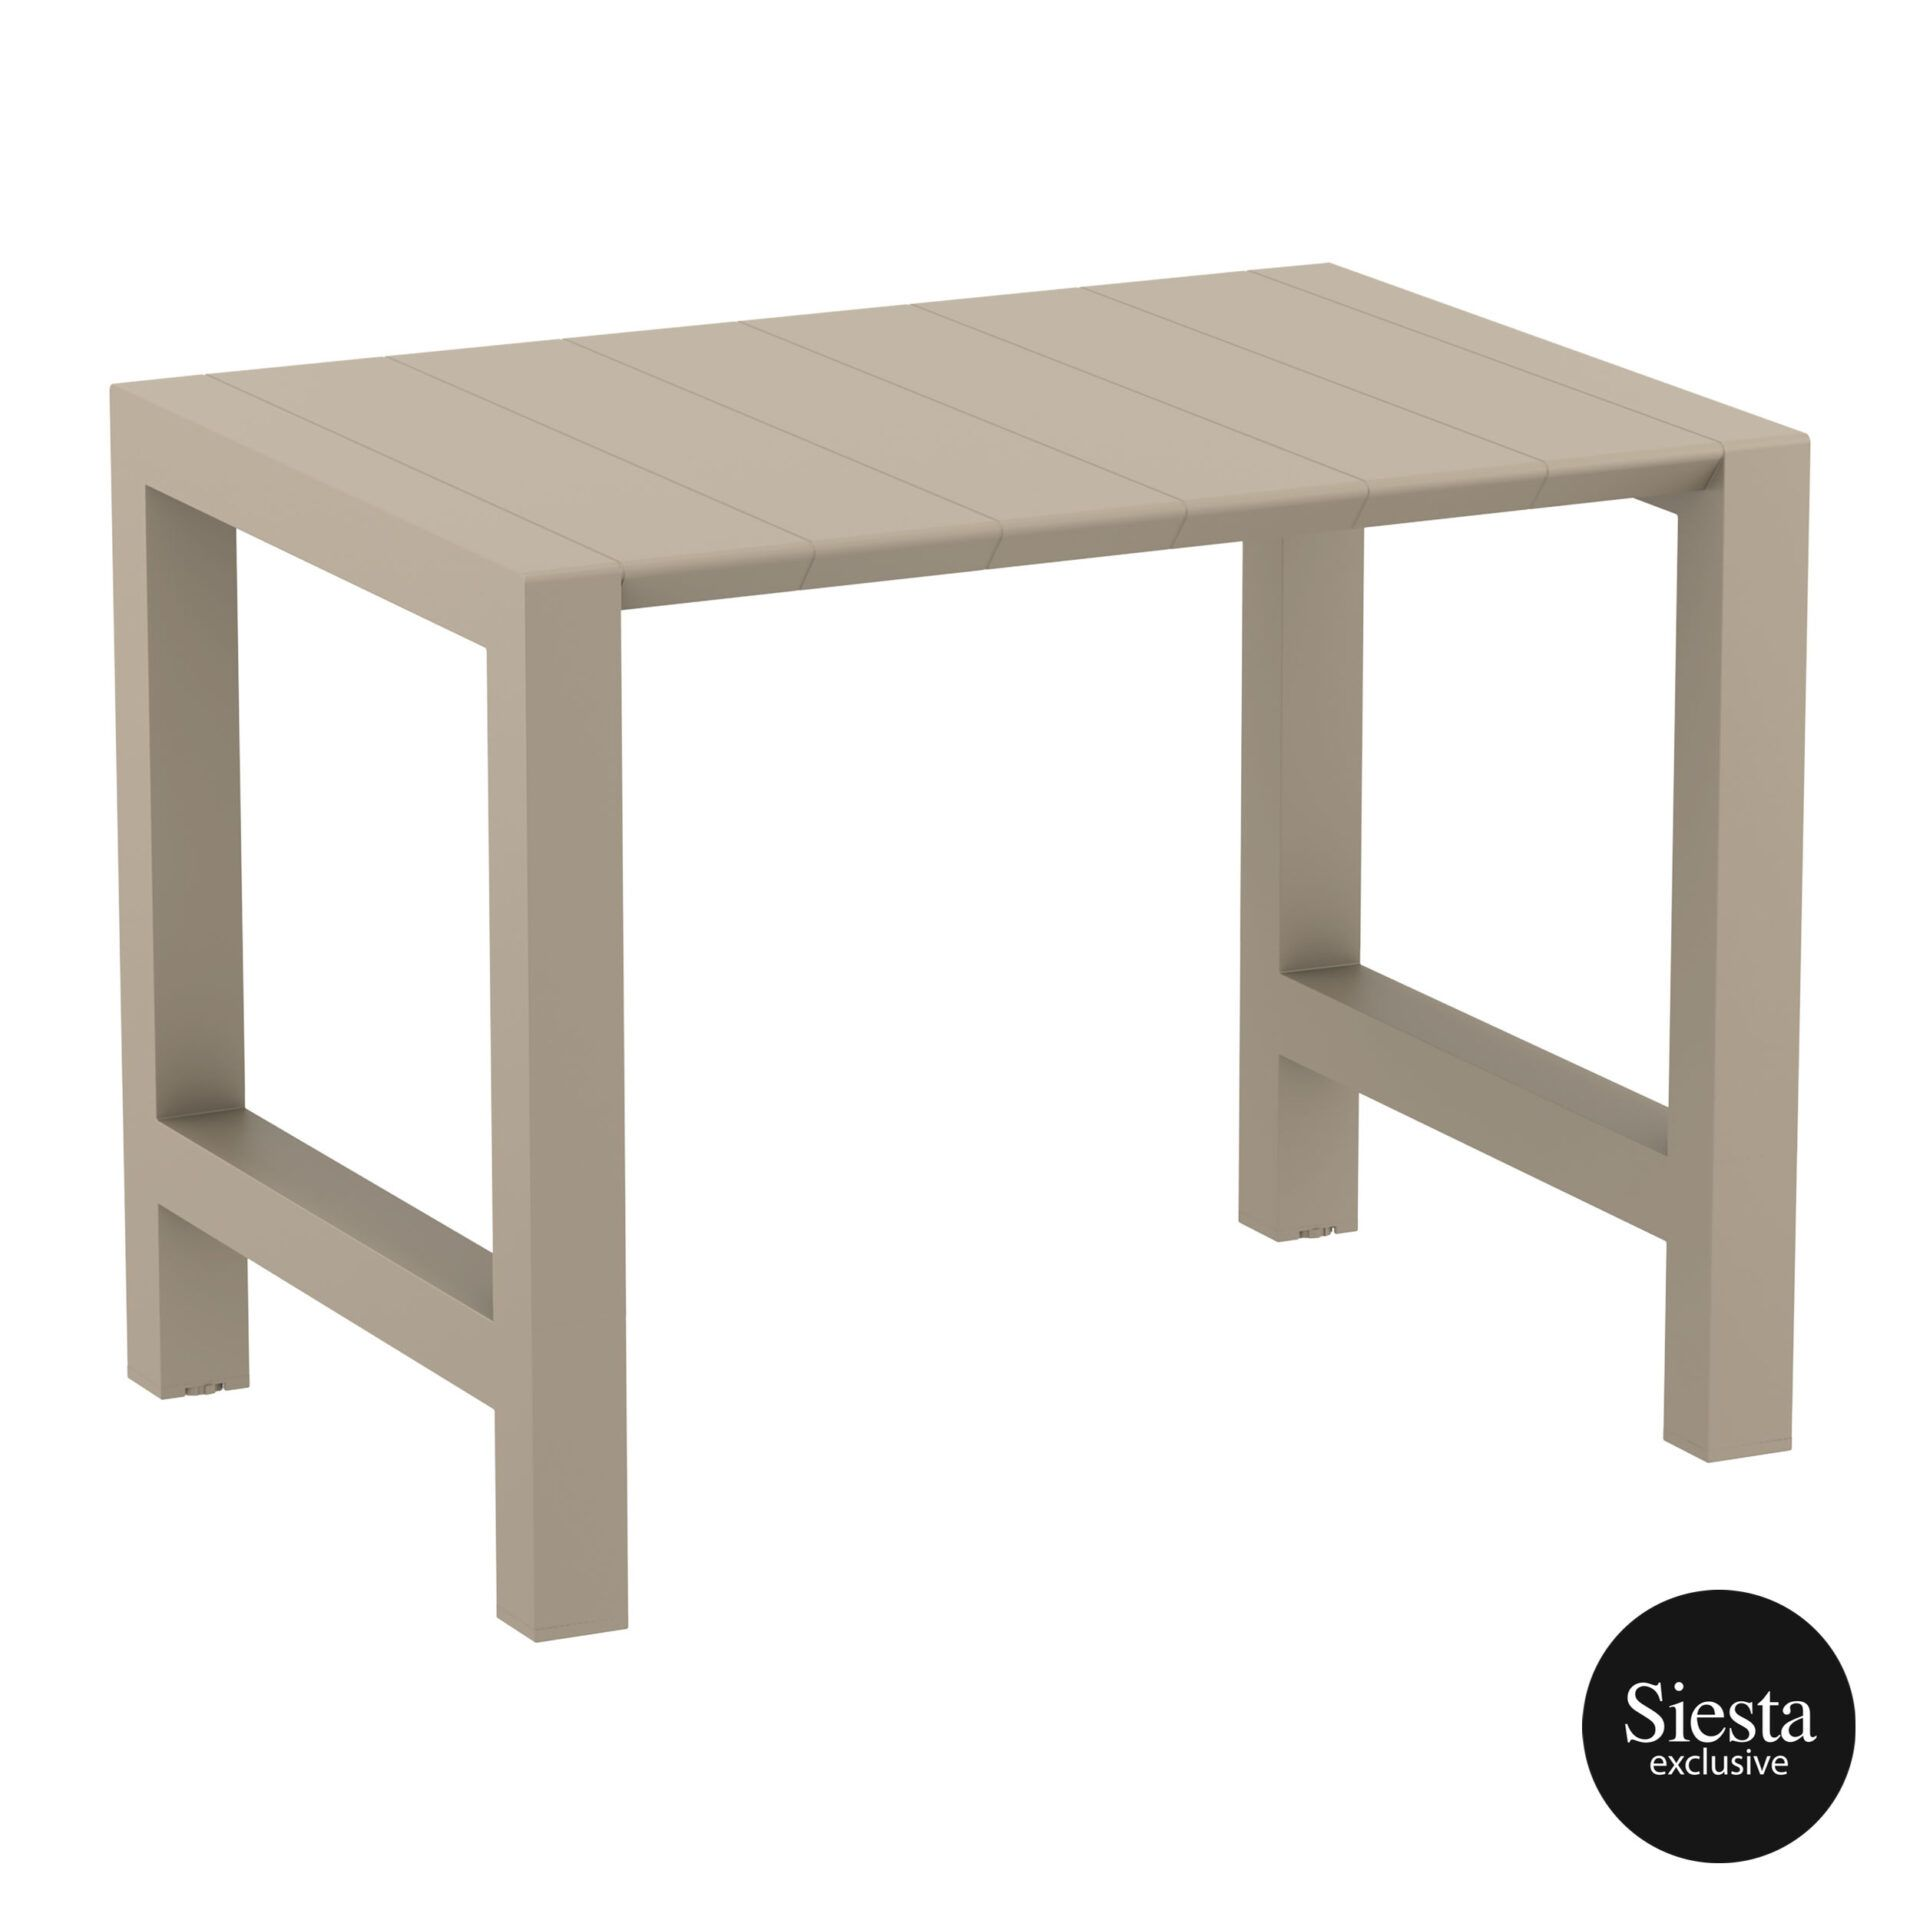 010 vegas bar table 140 taupe front side